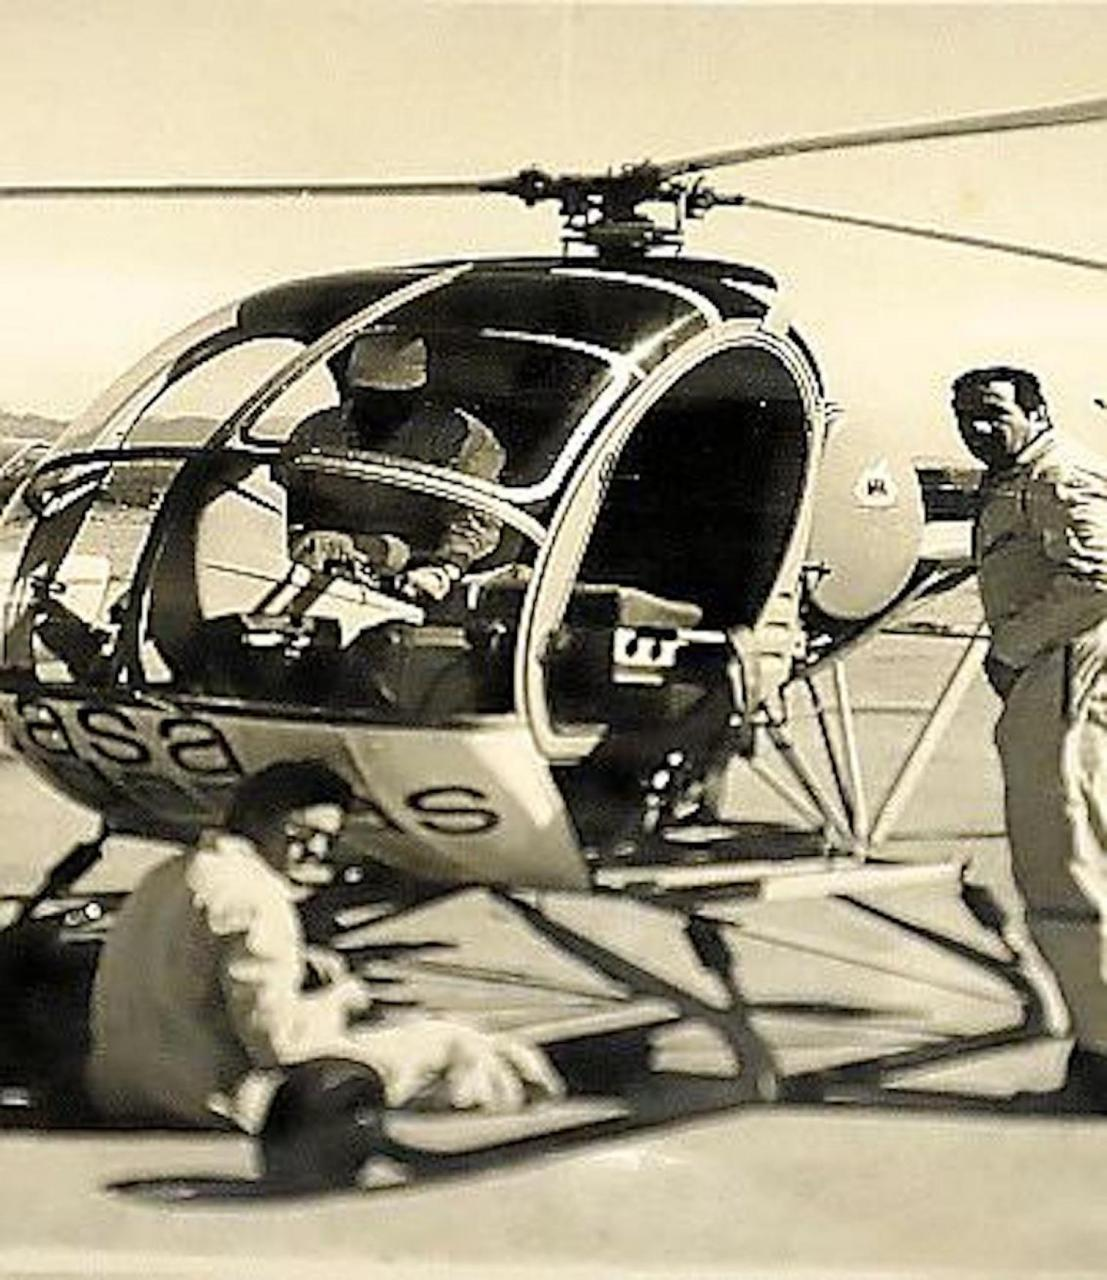 Josep Planas i Montanyà rented a helicopter to get aerials of Palma in the 50's & 60's.